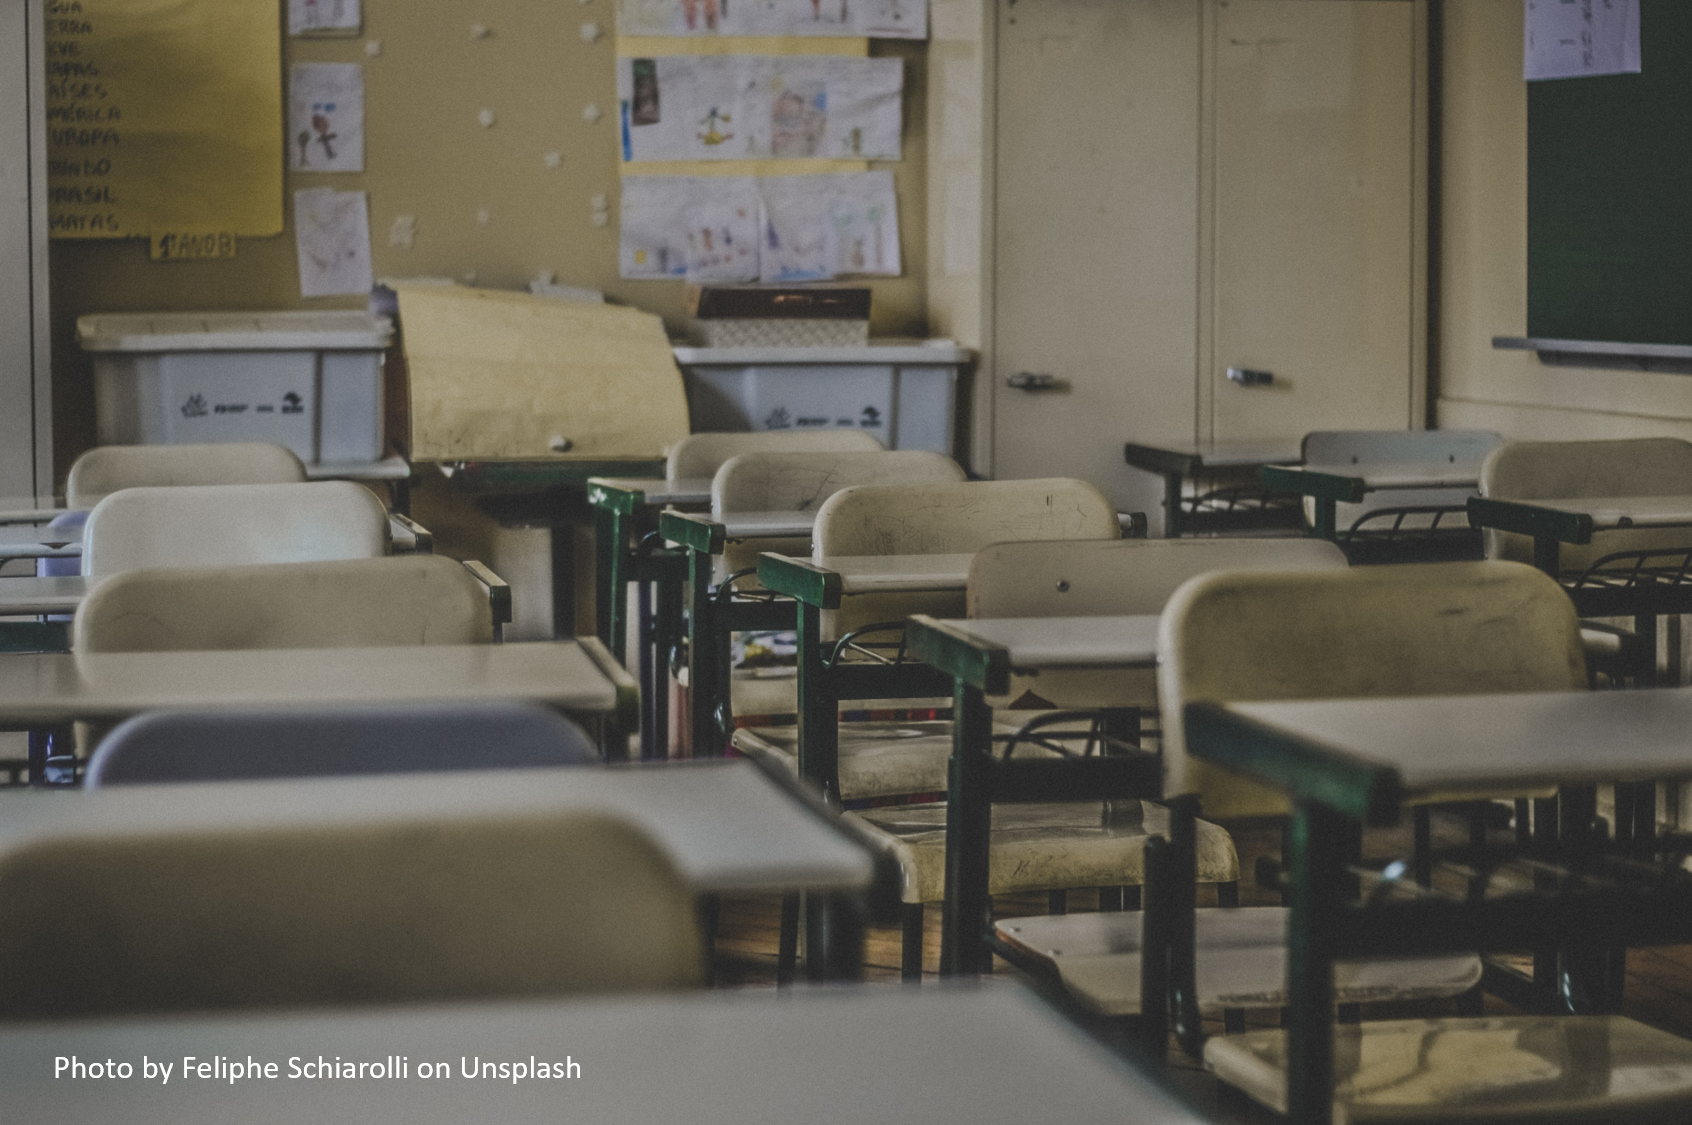 Article: Co-operation and consistency: a global survey of professionals involved in reopening schools during the COVID-19 pandemic